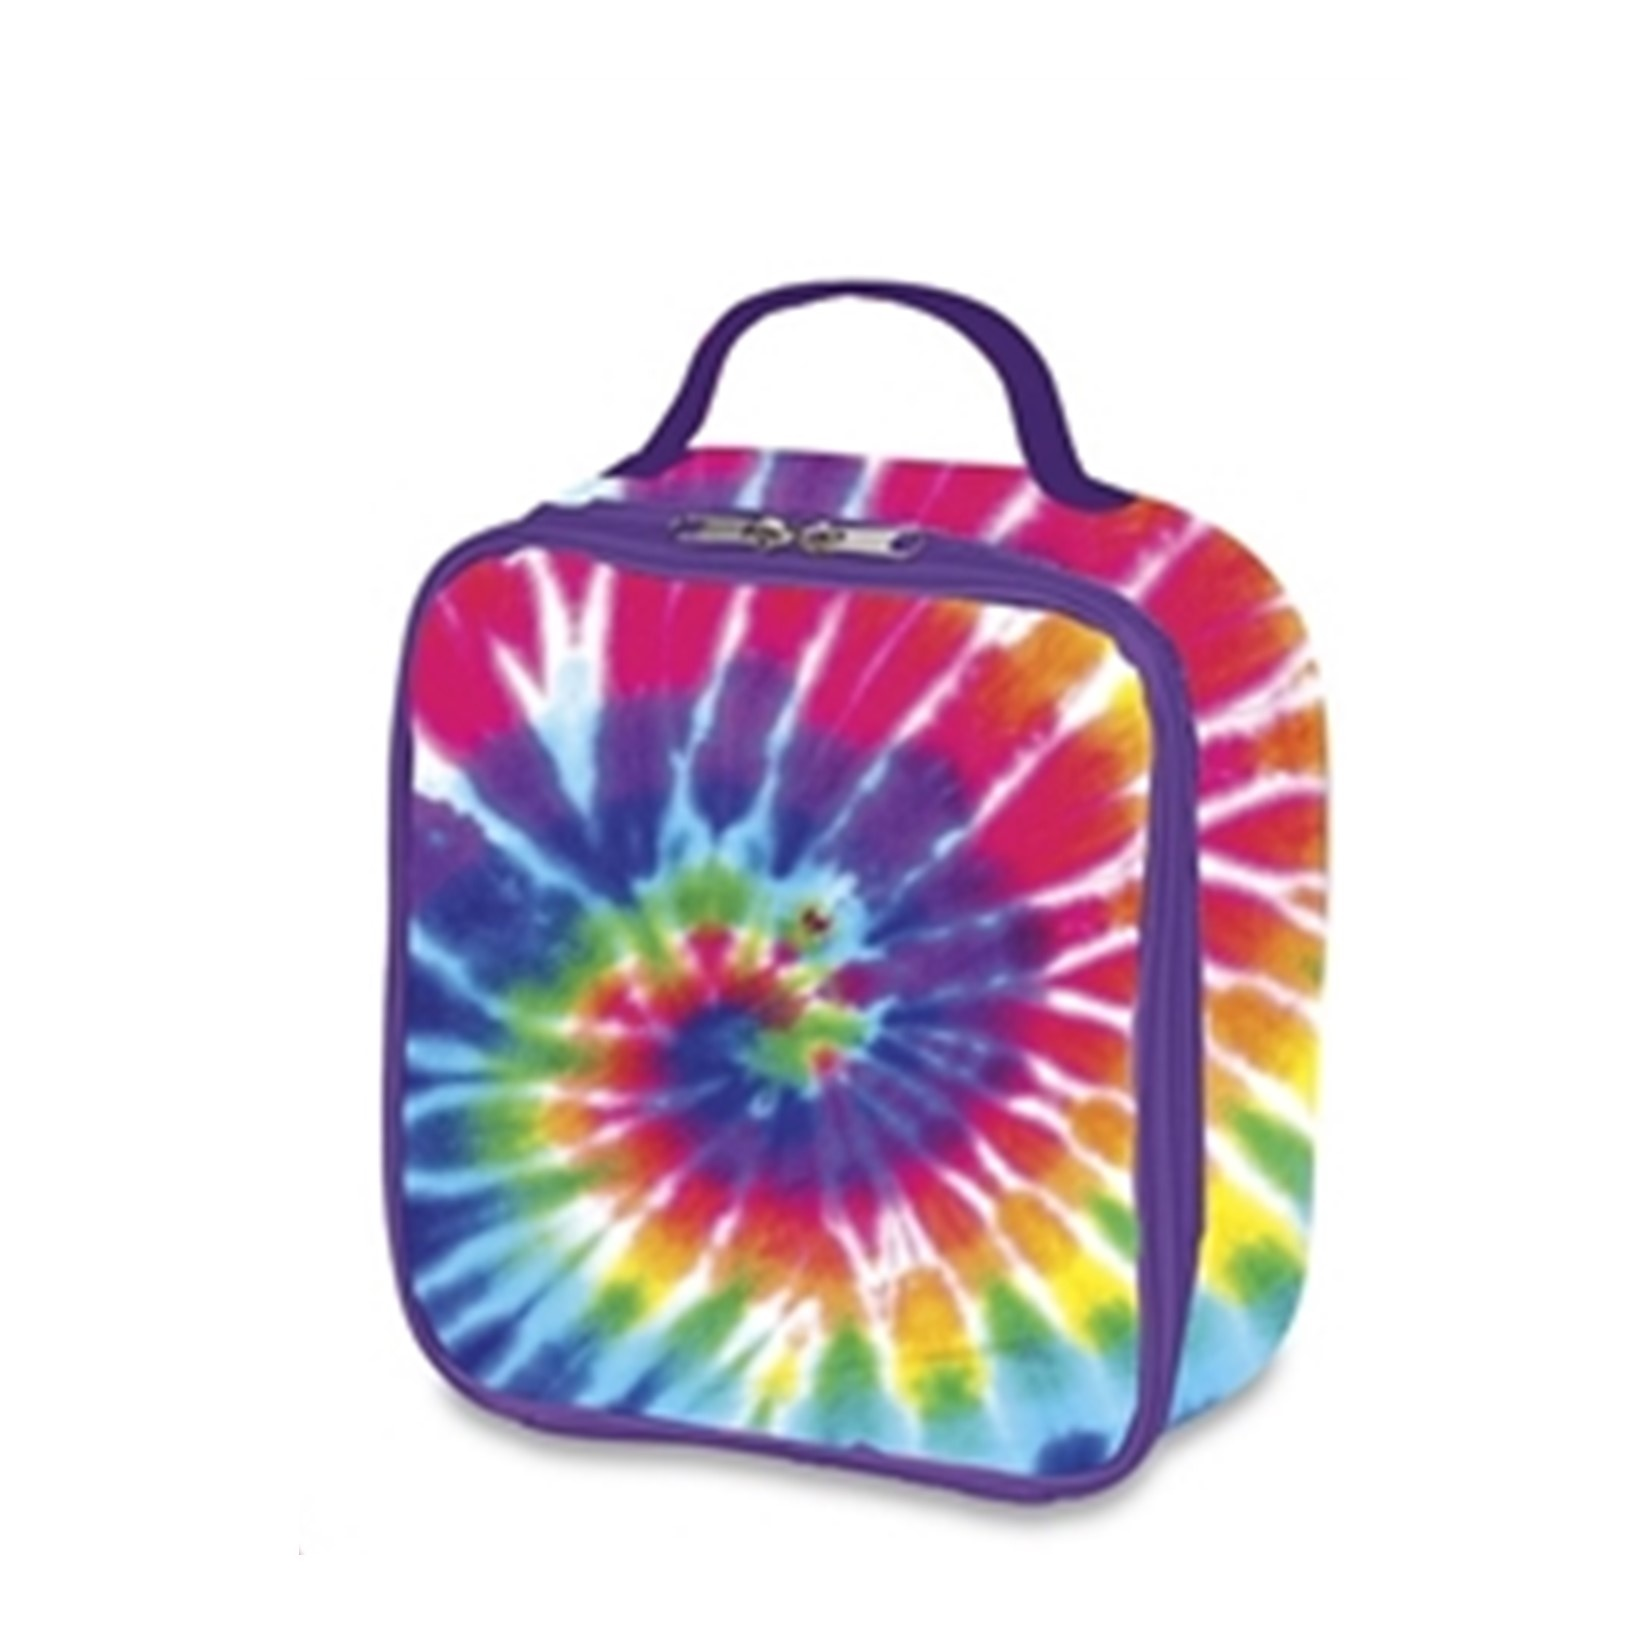 Primary Tie Dye Lunch Box